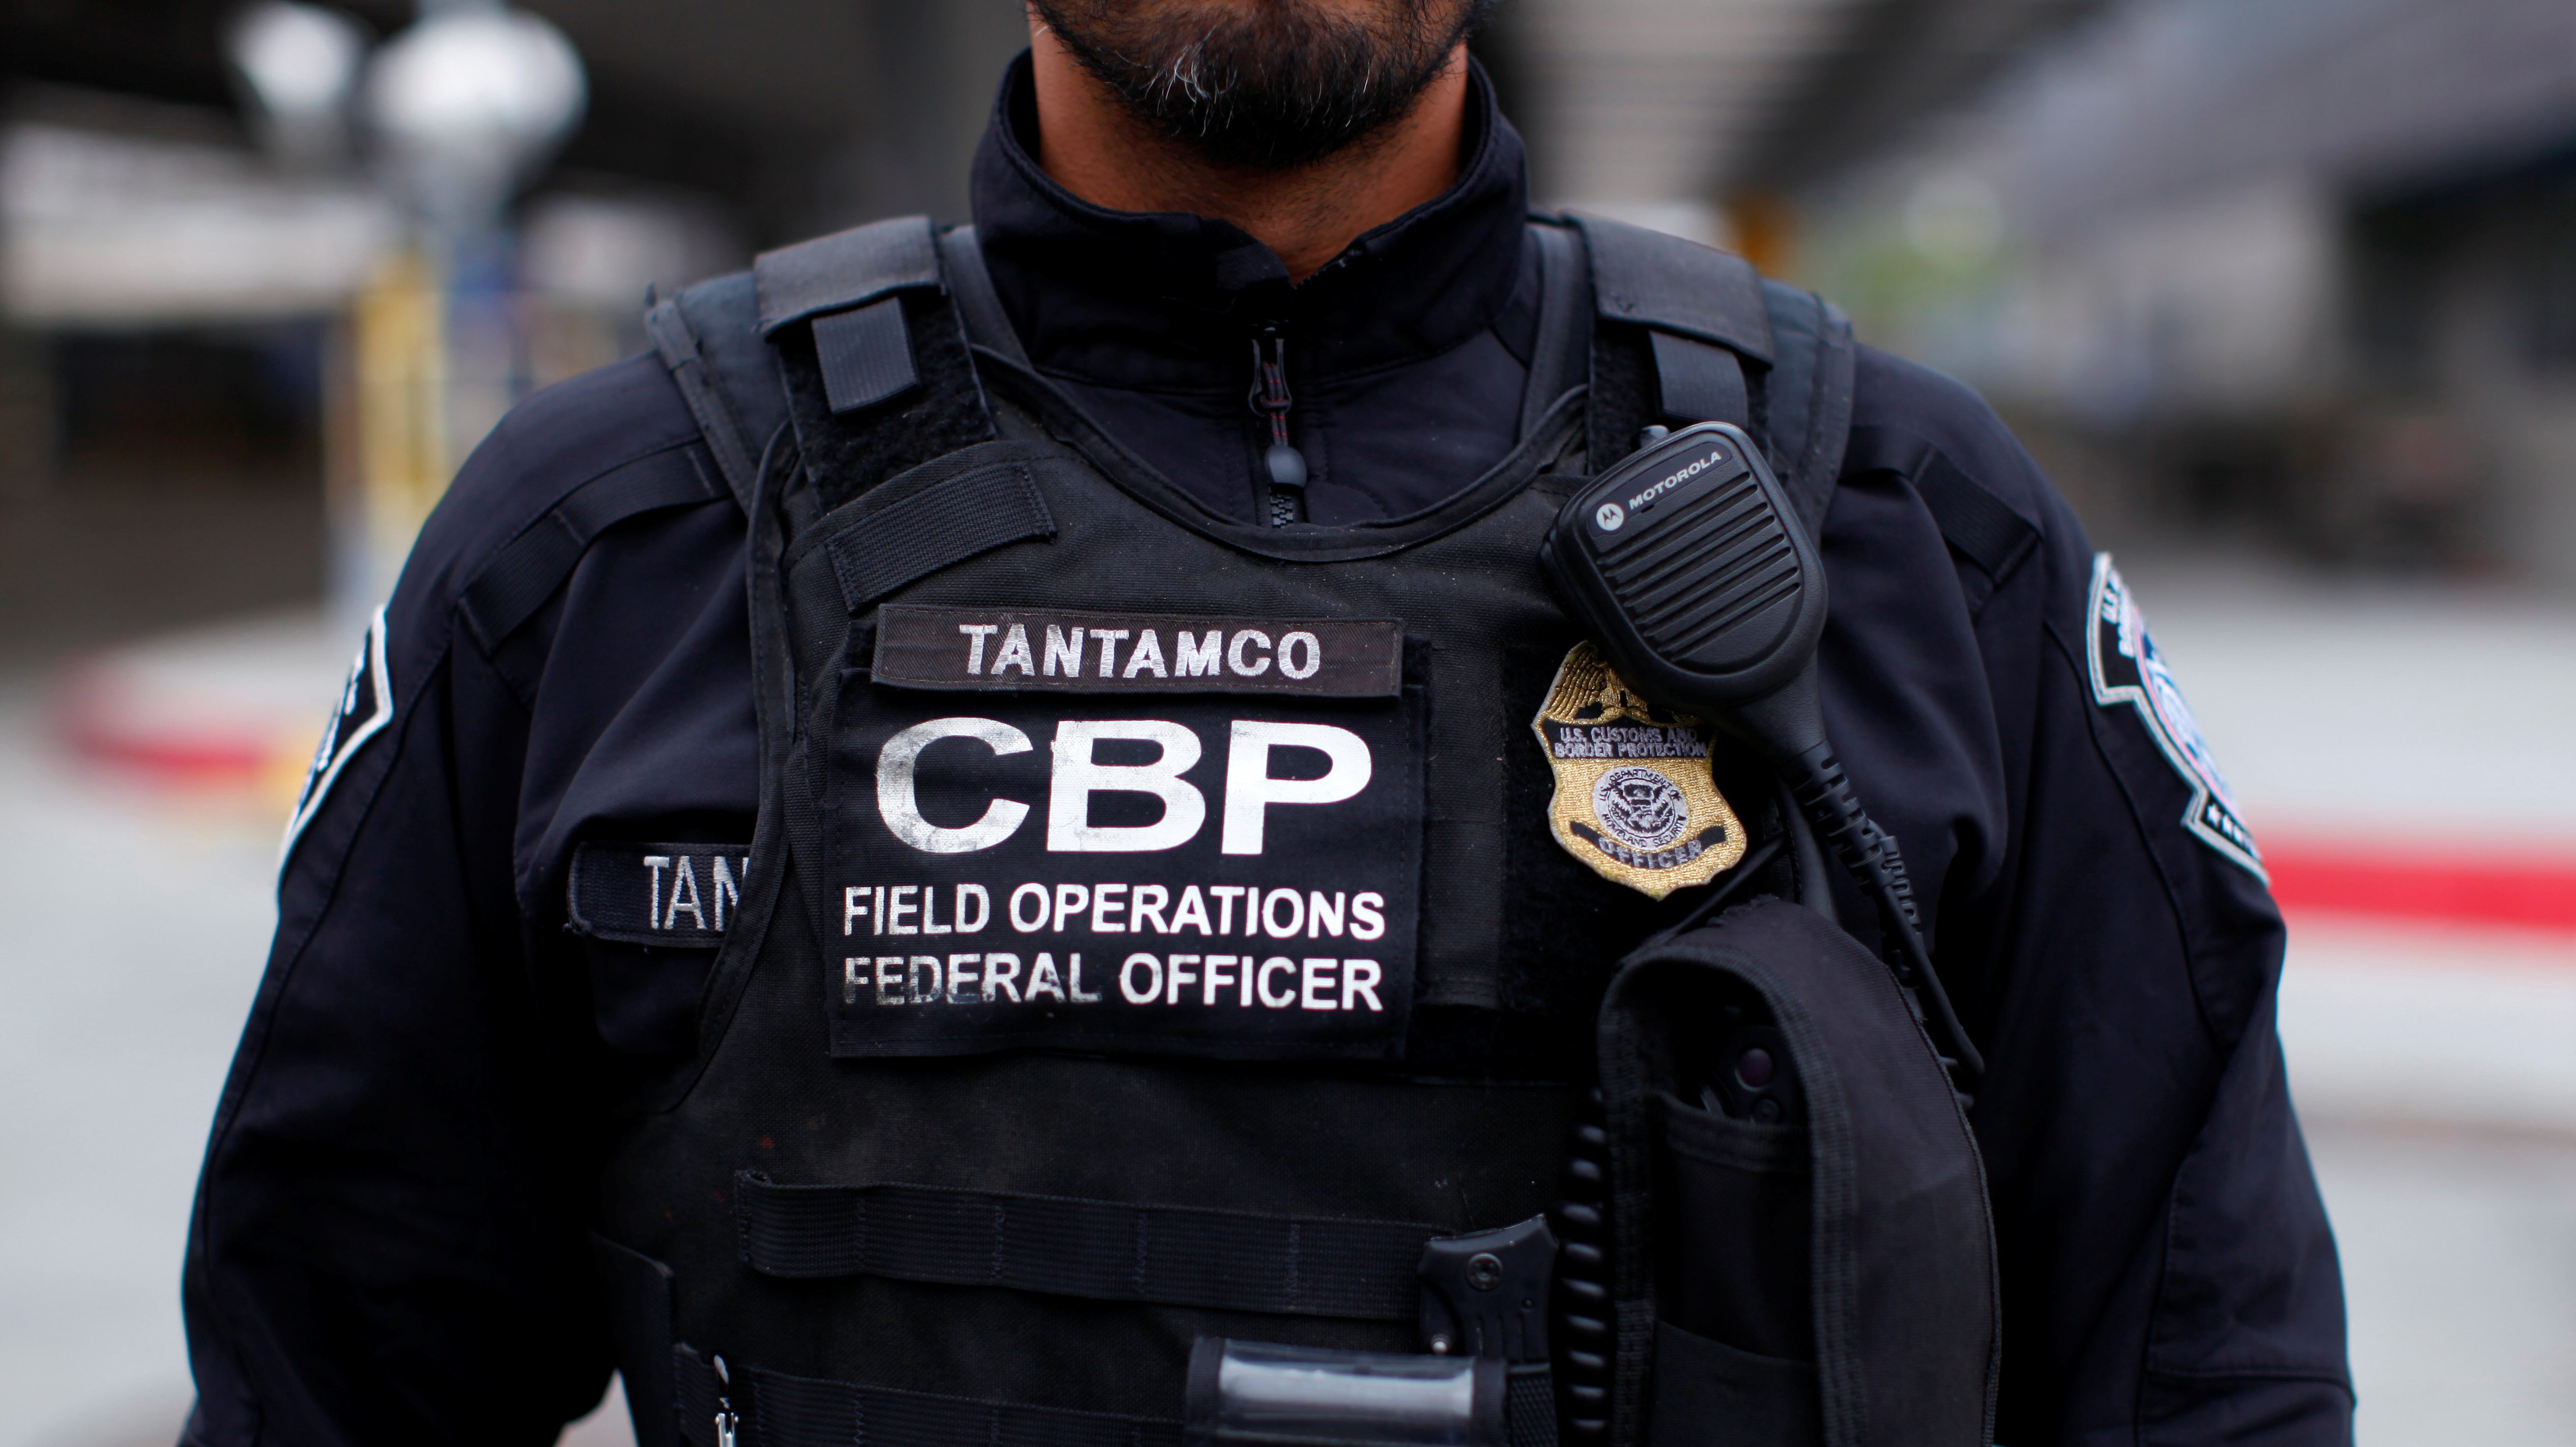 Customs And Border Protection  >> Customs And Border Protection Agents Form The Front Lines Of A